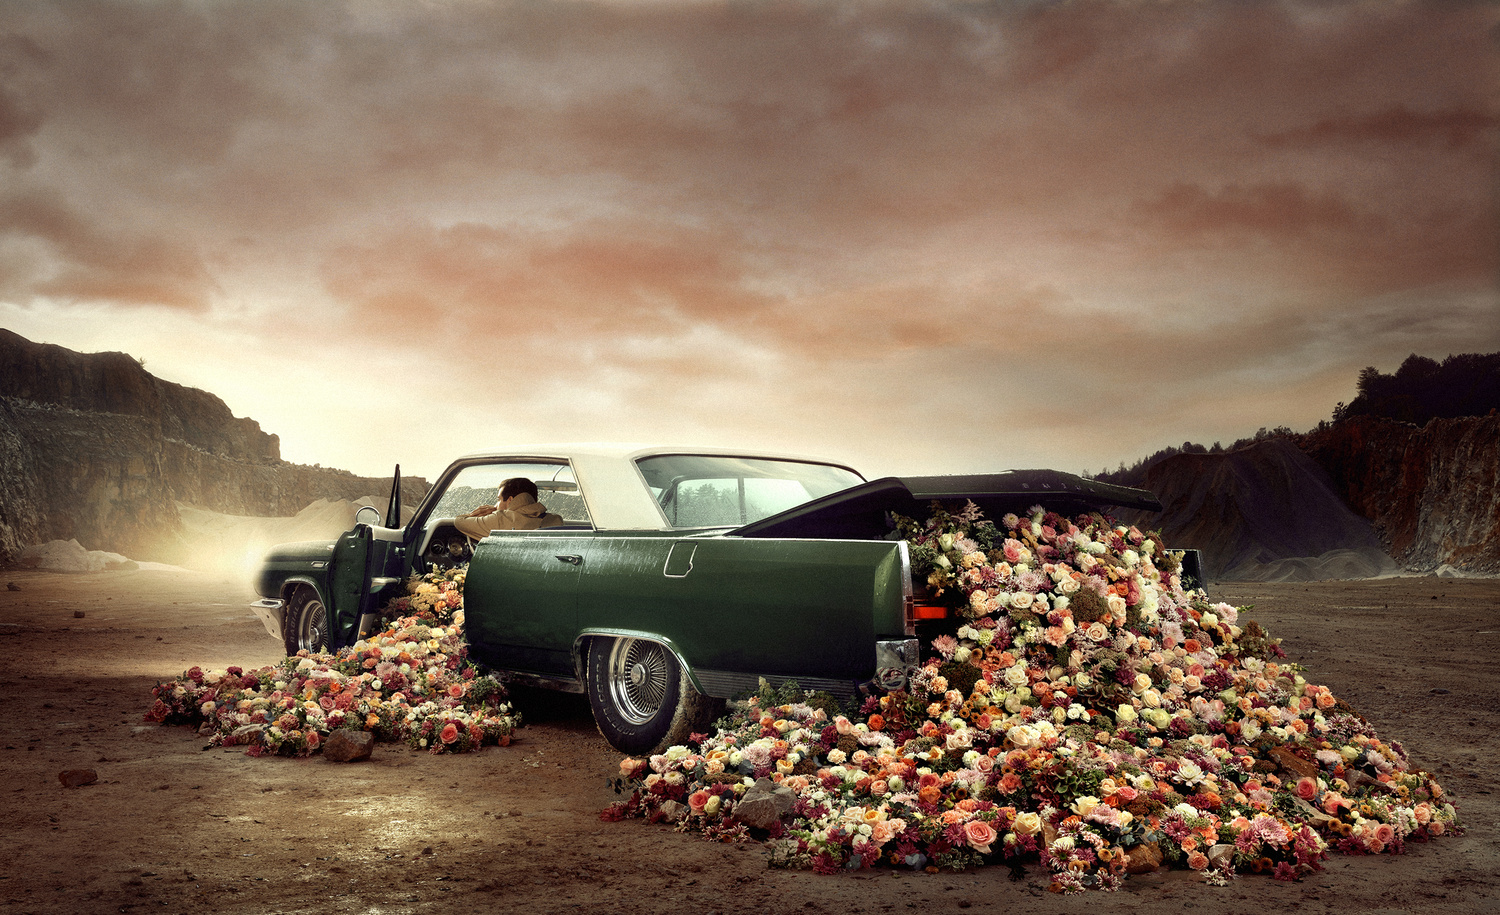 I Bloom For You by Martin Stranka